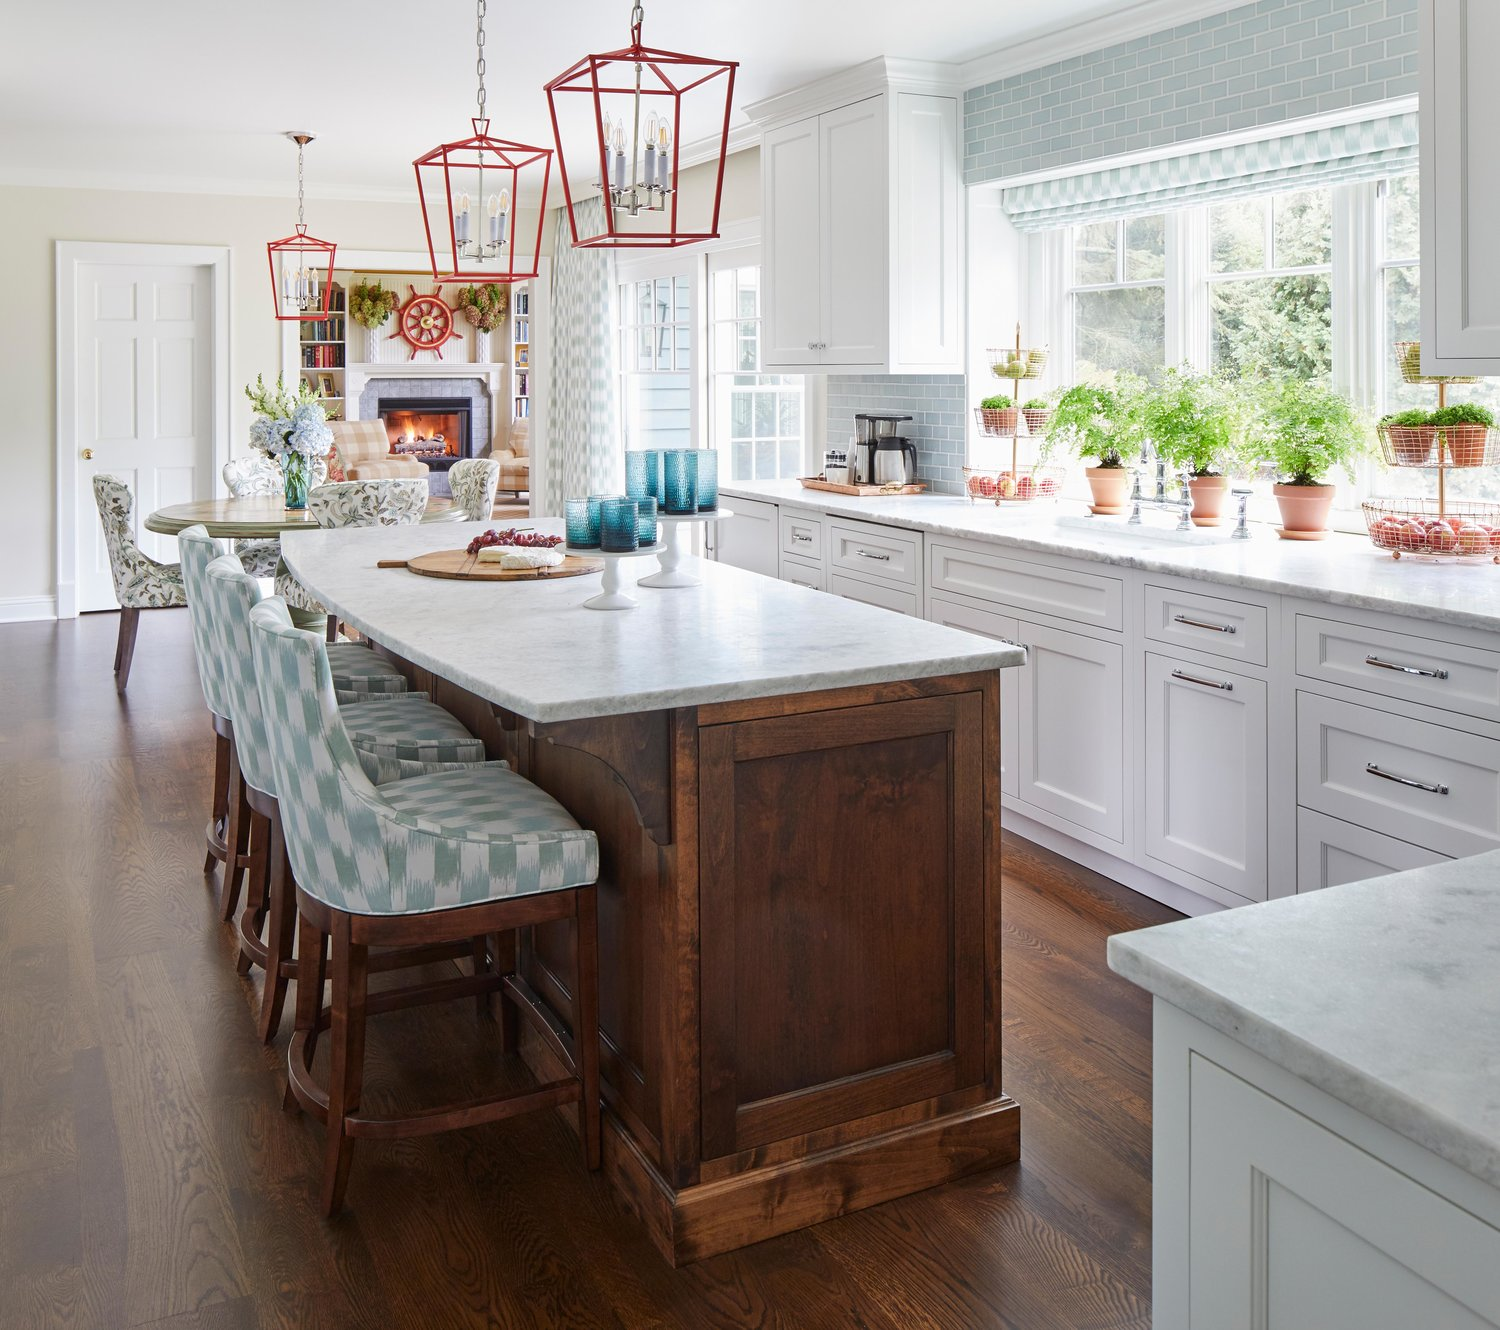 Classic white kitchen with light blue accents, wood island, and coral lantern pendant lighting. Design by Elizabeth Drake. Photo by Werner Straube. #kitchendesign #blueandwhite #classicdesign #traditionaldecor #whitekitchen #interiordesign